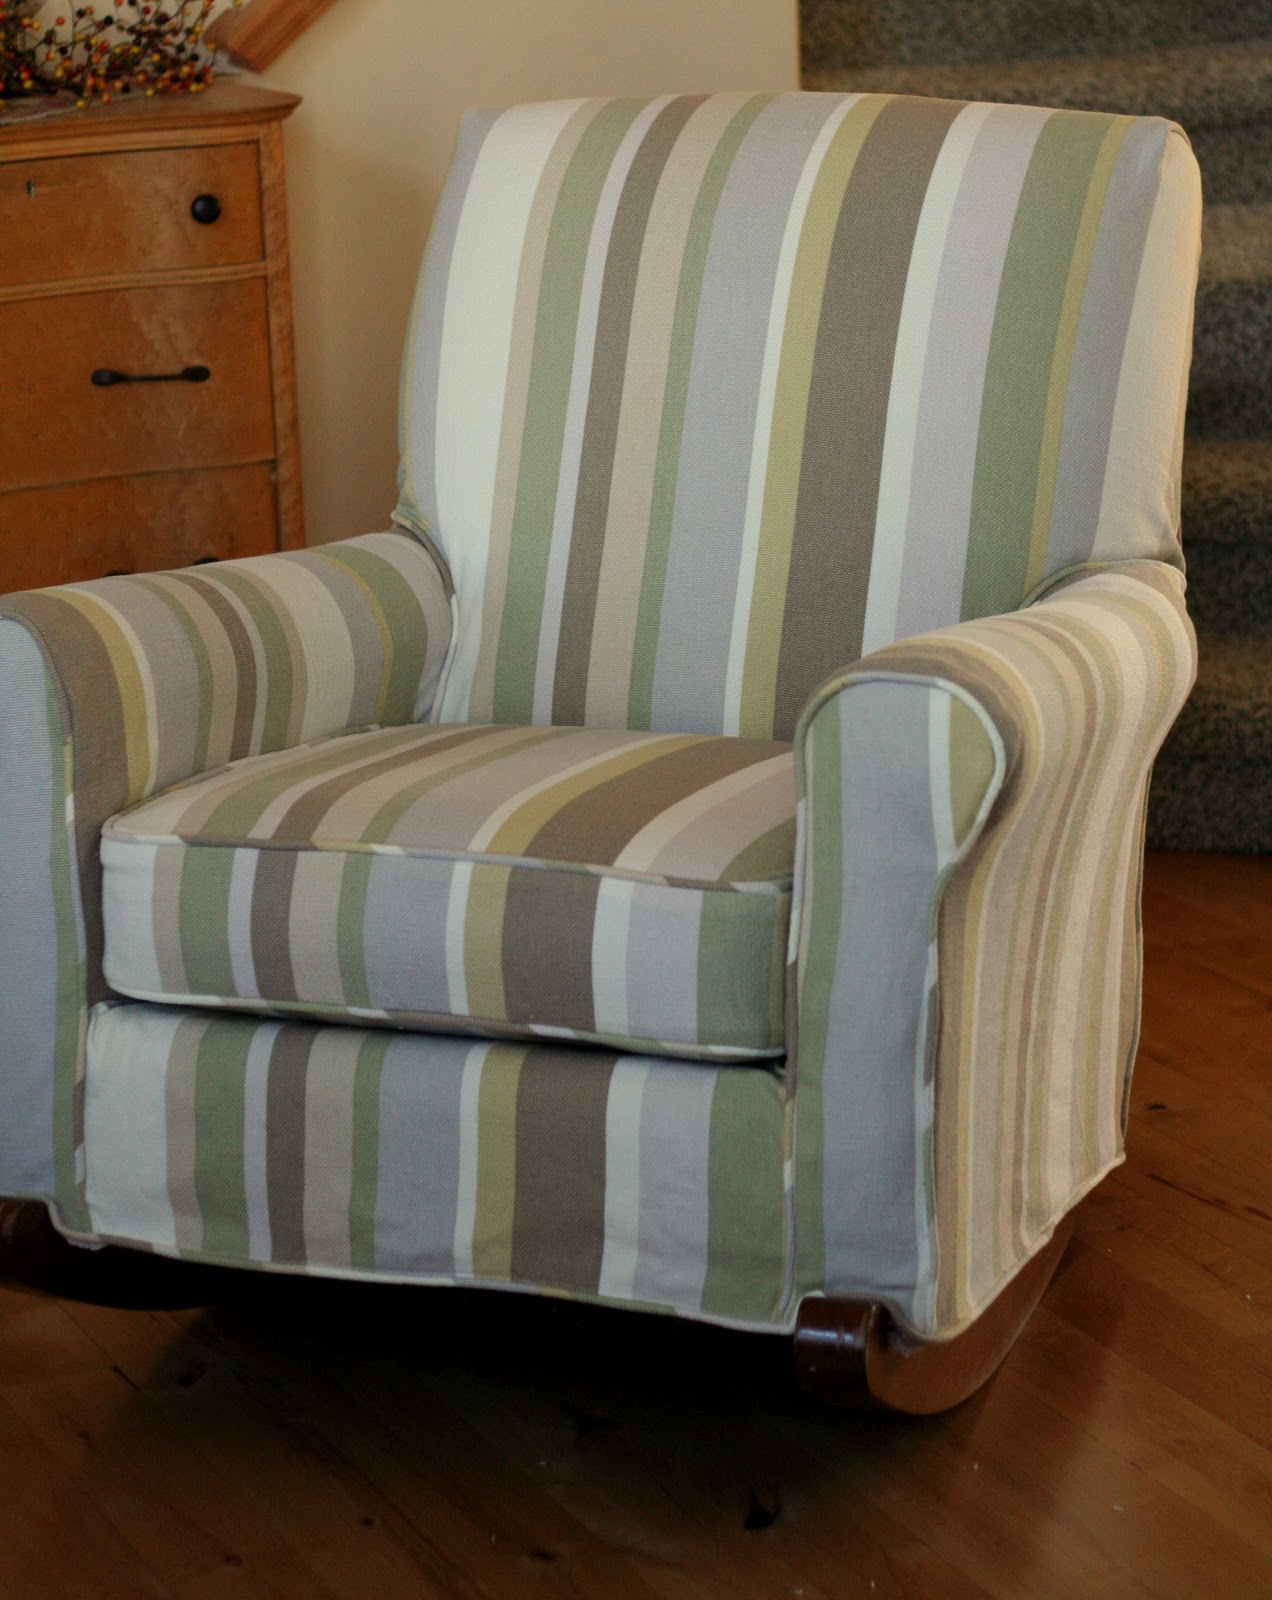 Custom Slipcovers by Shelley: Upholstered Rocking chair